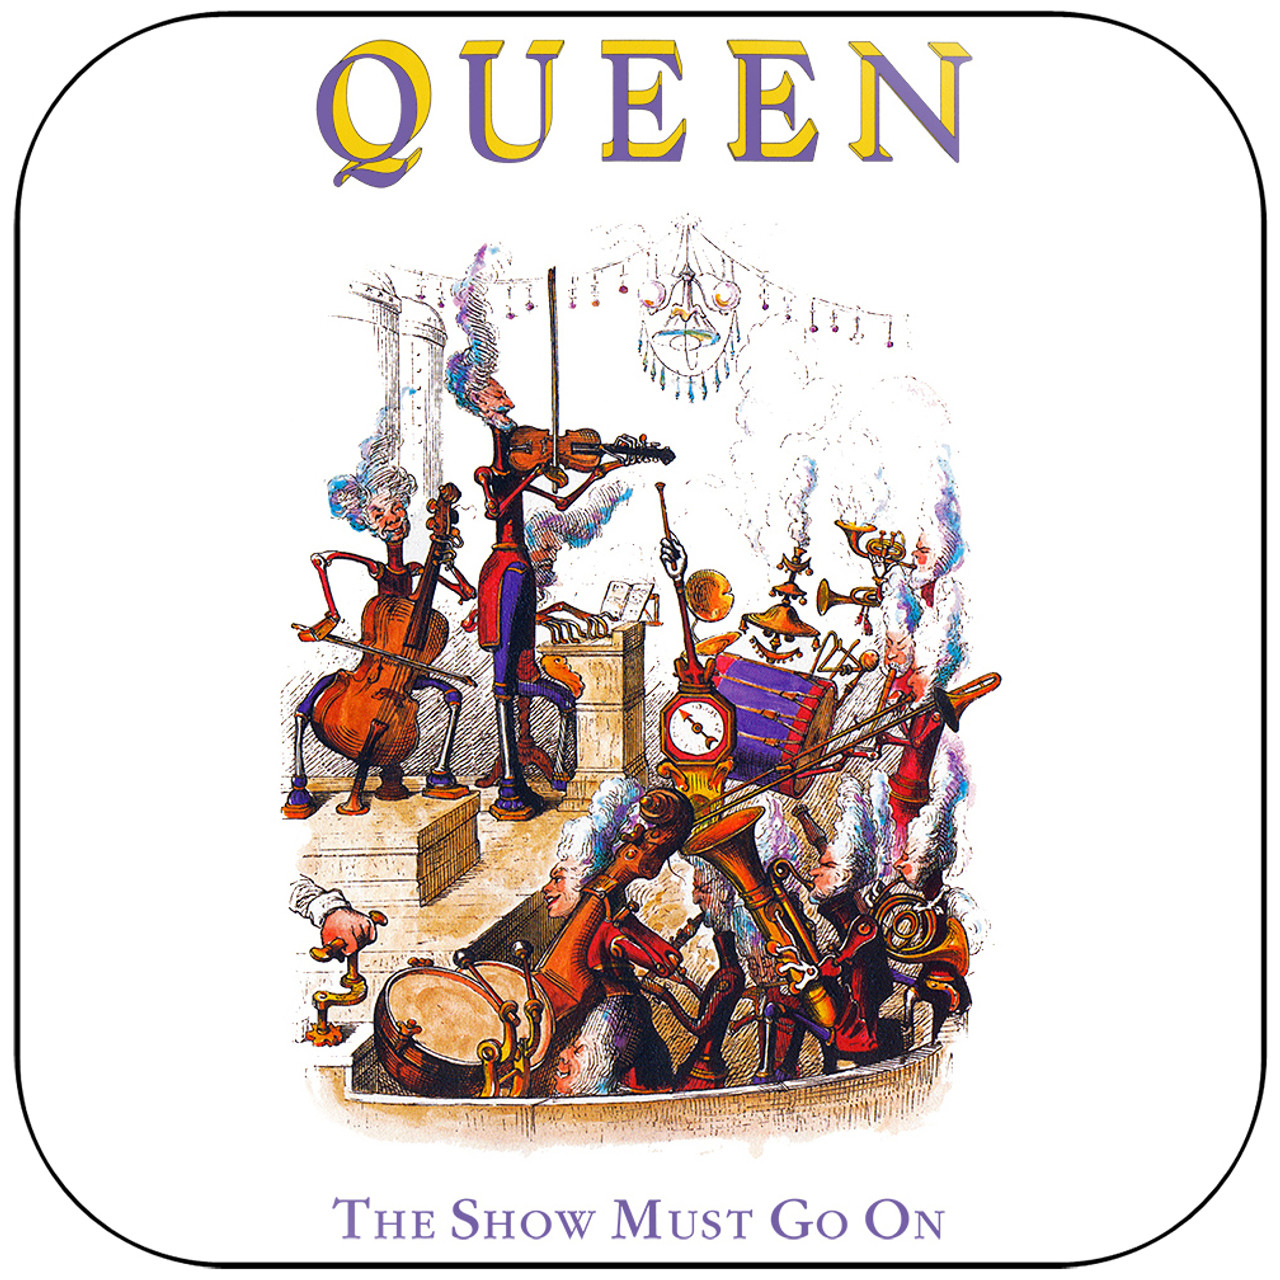 Queen - The Show Must Go On Album Cover Sticker Album Cover Sticker